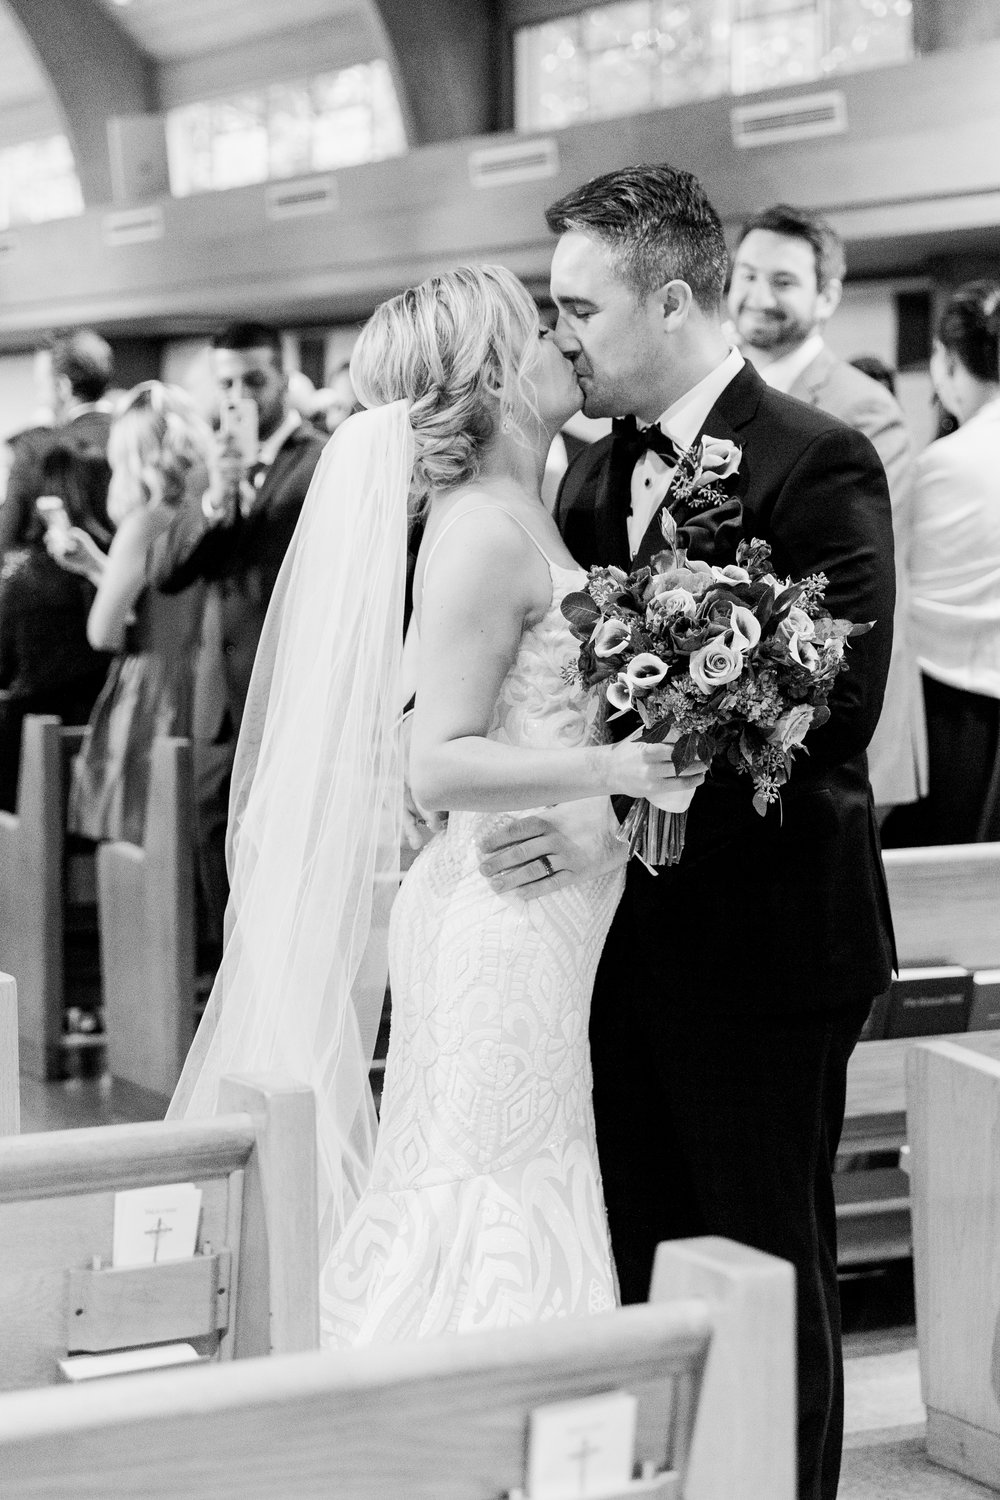 DavidAmandaMundy-Wedding-10282017-KathrynIvyPhotography-251-Copy 1.jpg